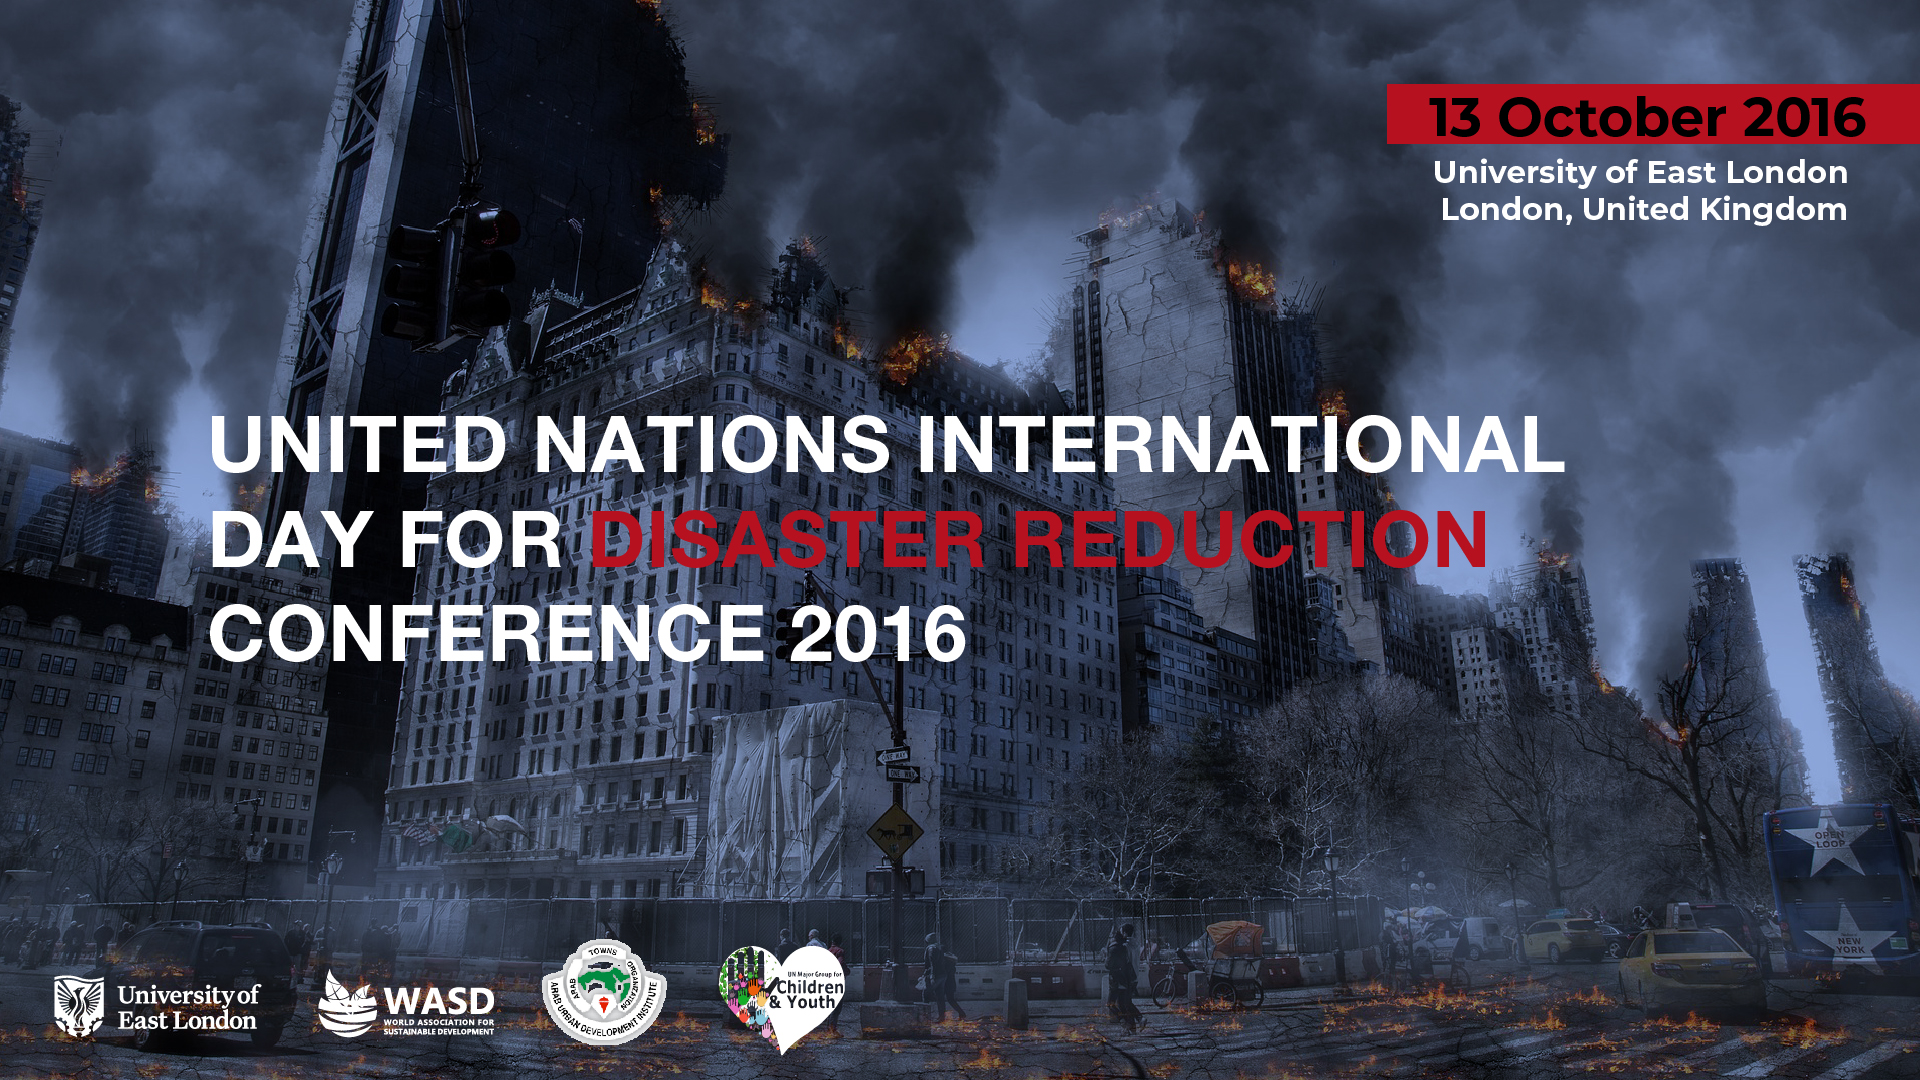 UN International Day for Disaster Reduction Conference, London, United Kingdom 2016 <div style='clear:both;width:100%;height:0px;'></div><span class='cat'>Sustainability Conferences, Diaspora, Sudan</span>